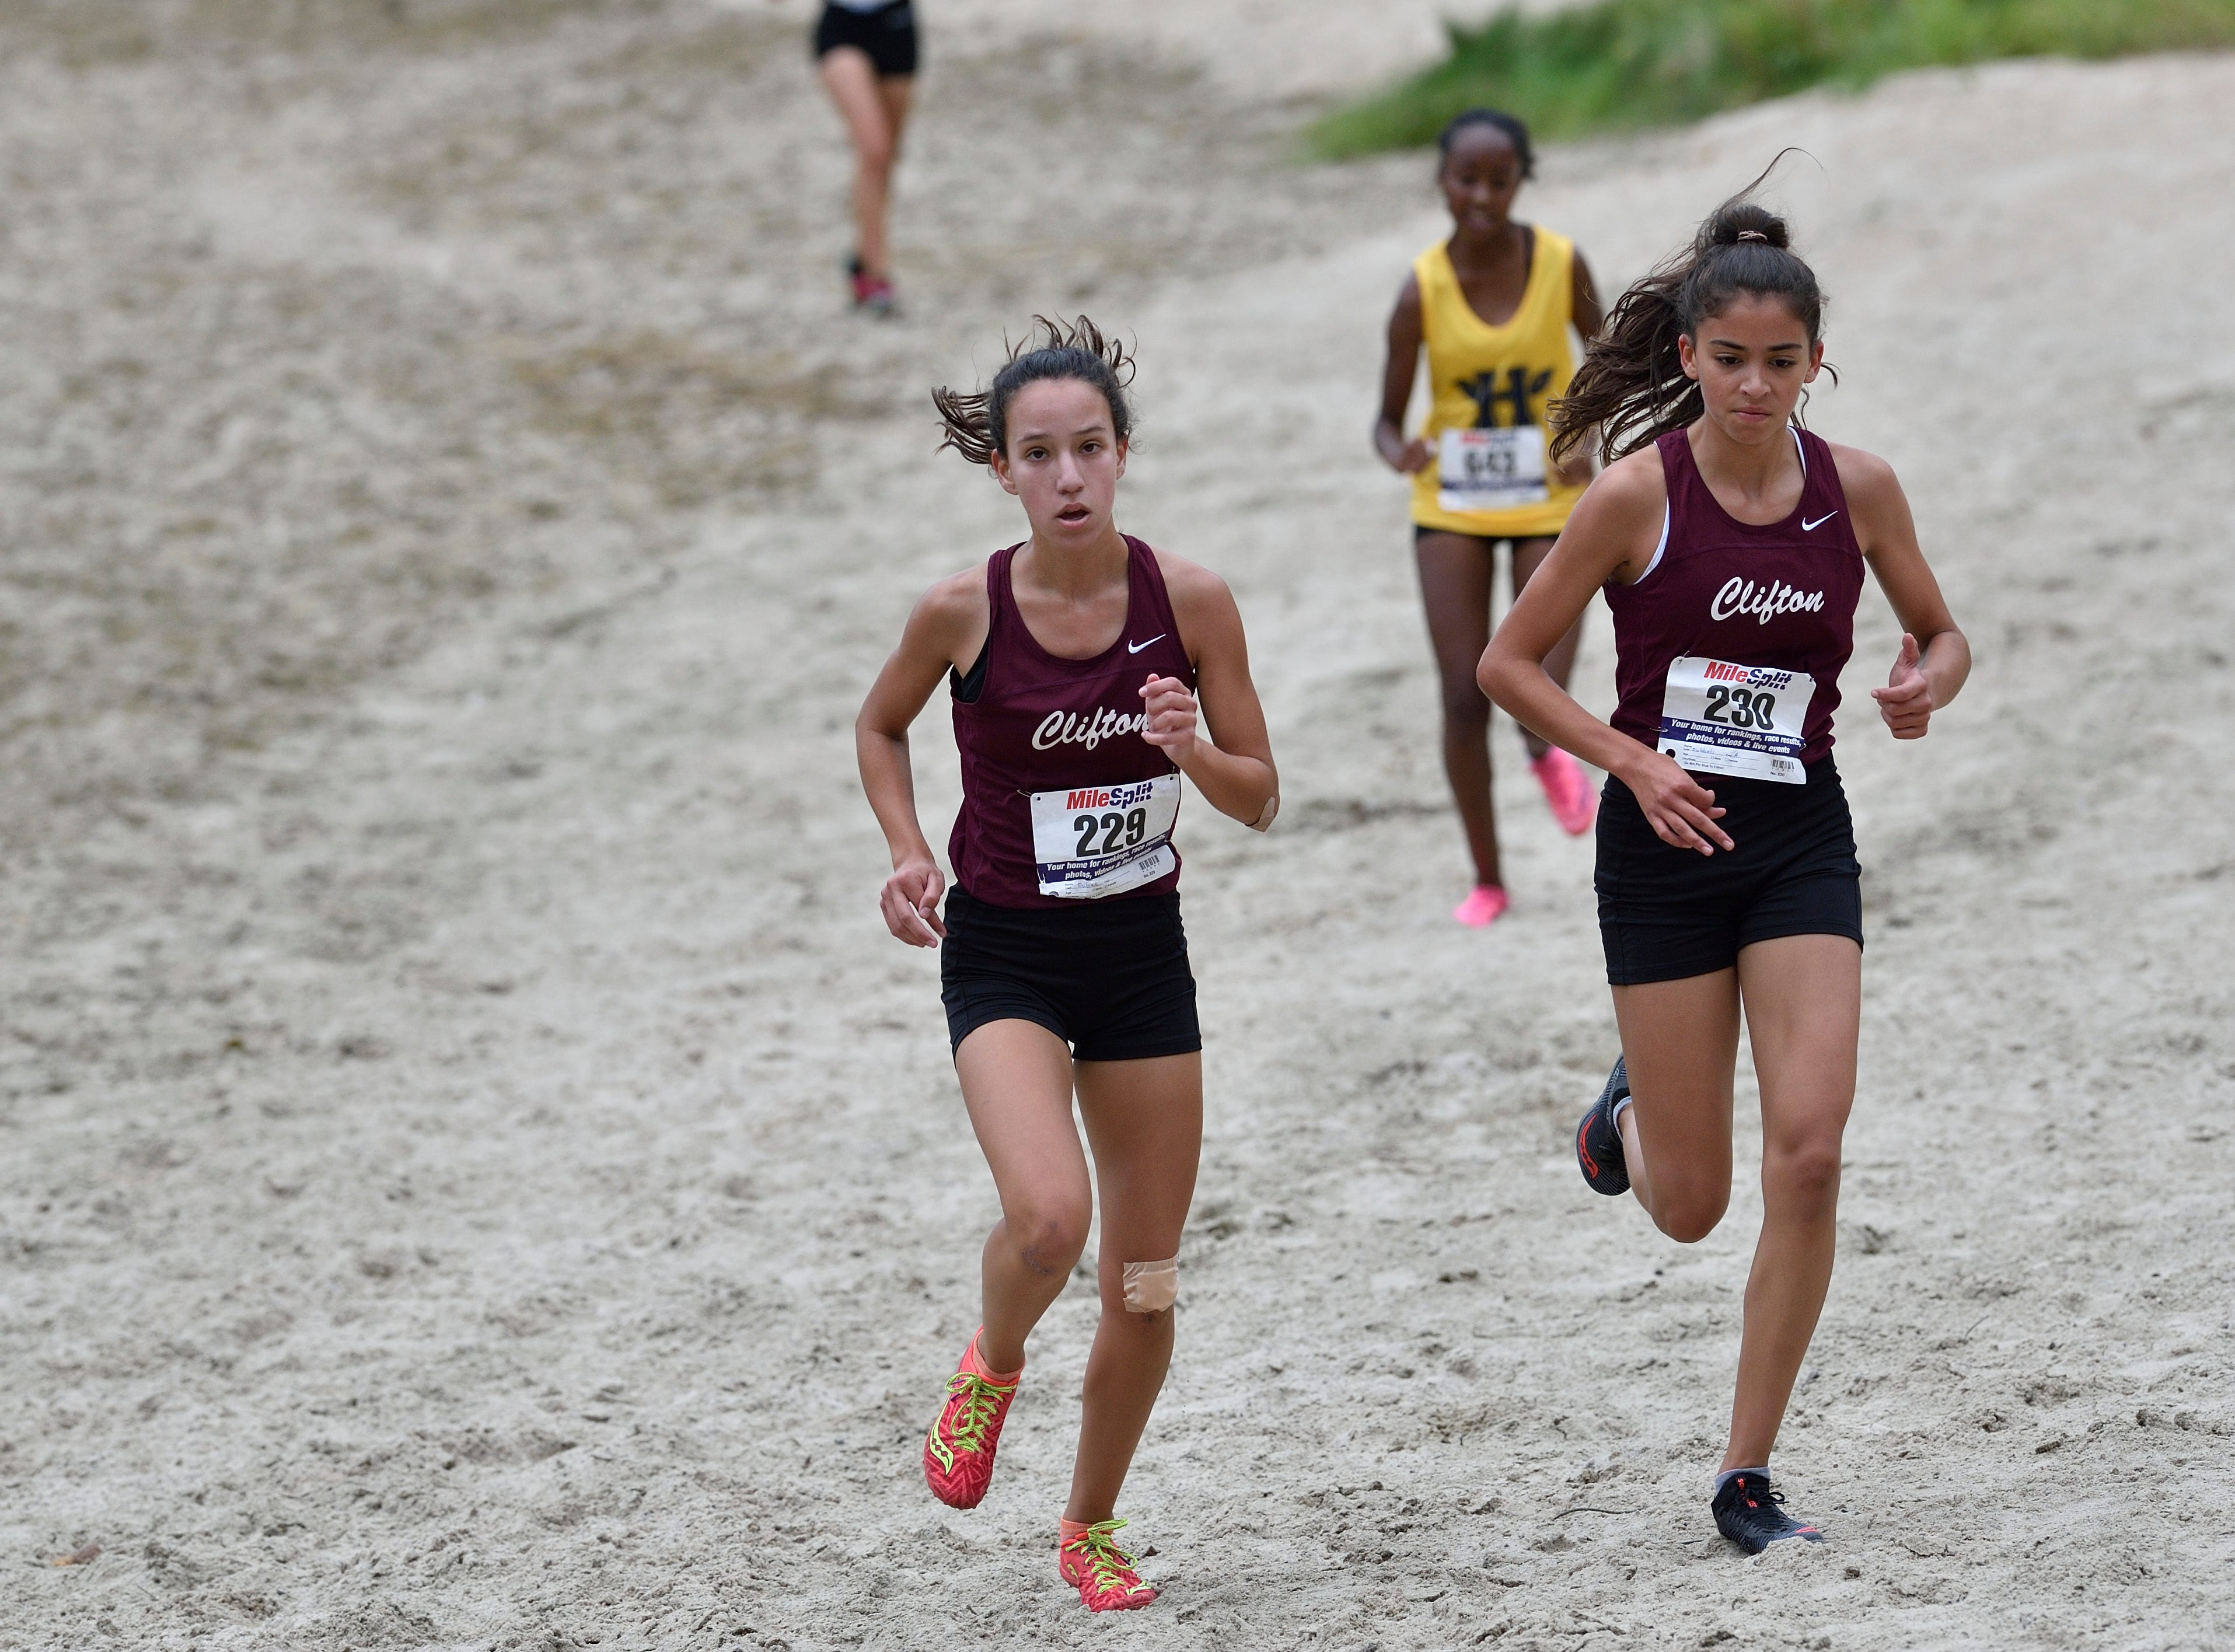 Mia Dubac (229) and Andrea Dubbels (230) of Clifton HS compete in the girls varsity A cross country race at Darlington County Park in Mahwah.